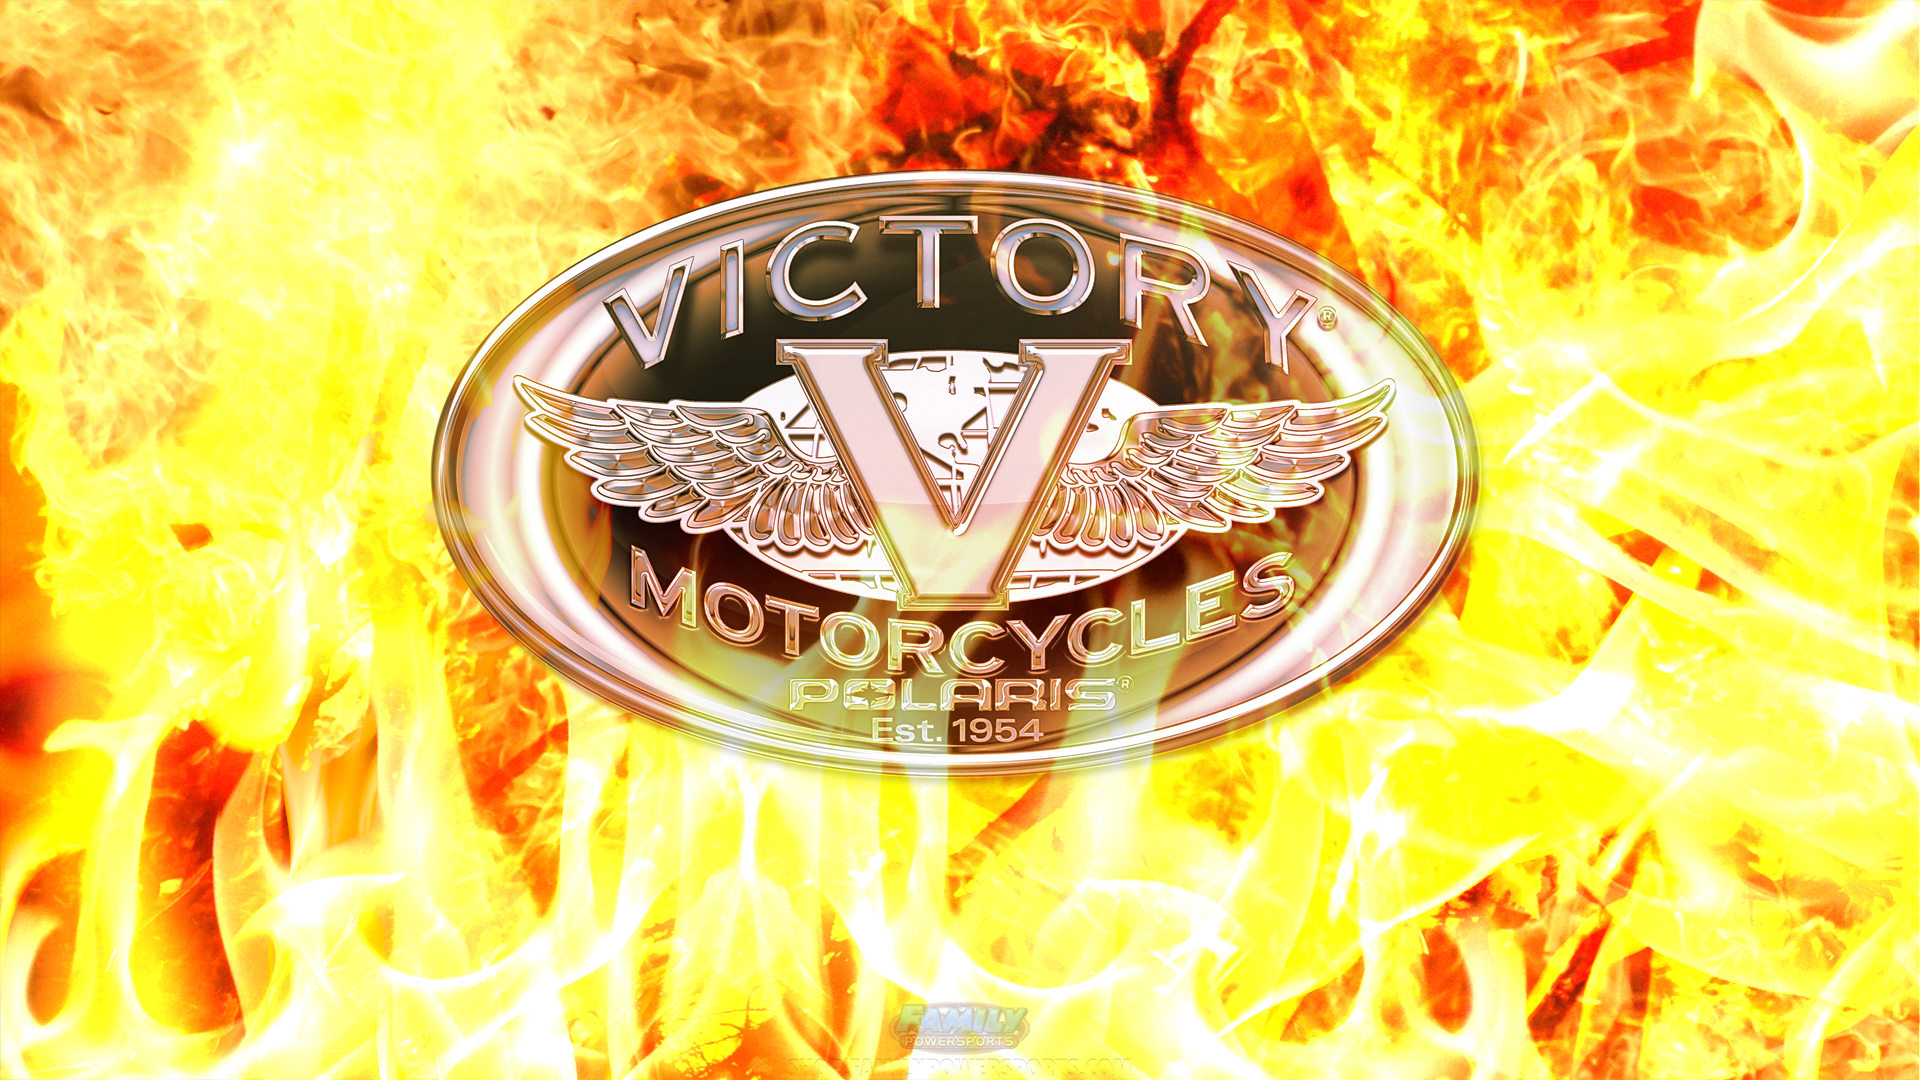 Victory Motorcycles wallpaper   390998 1920x1080